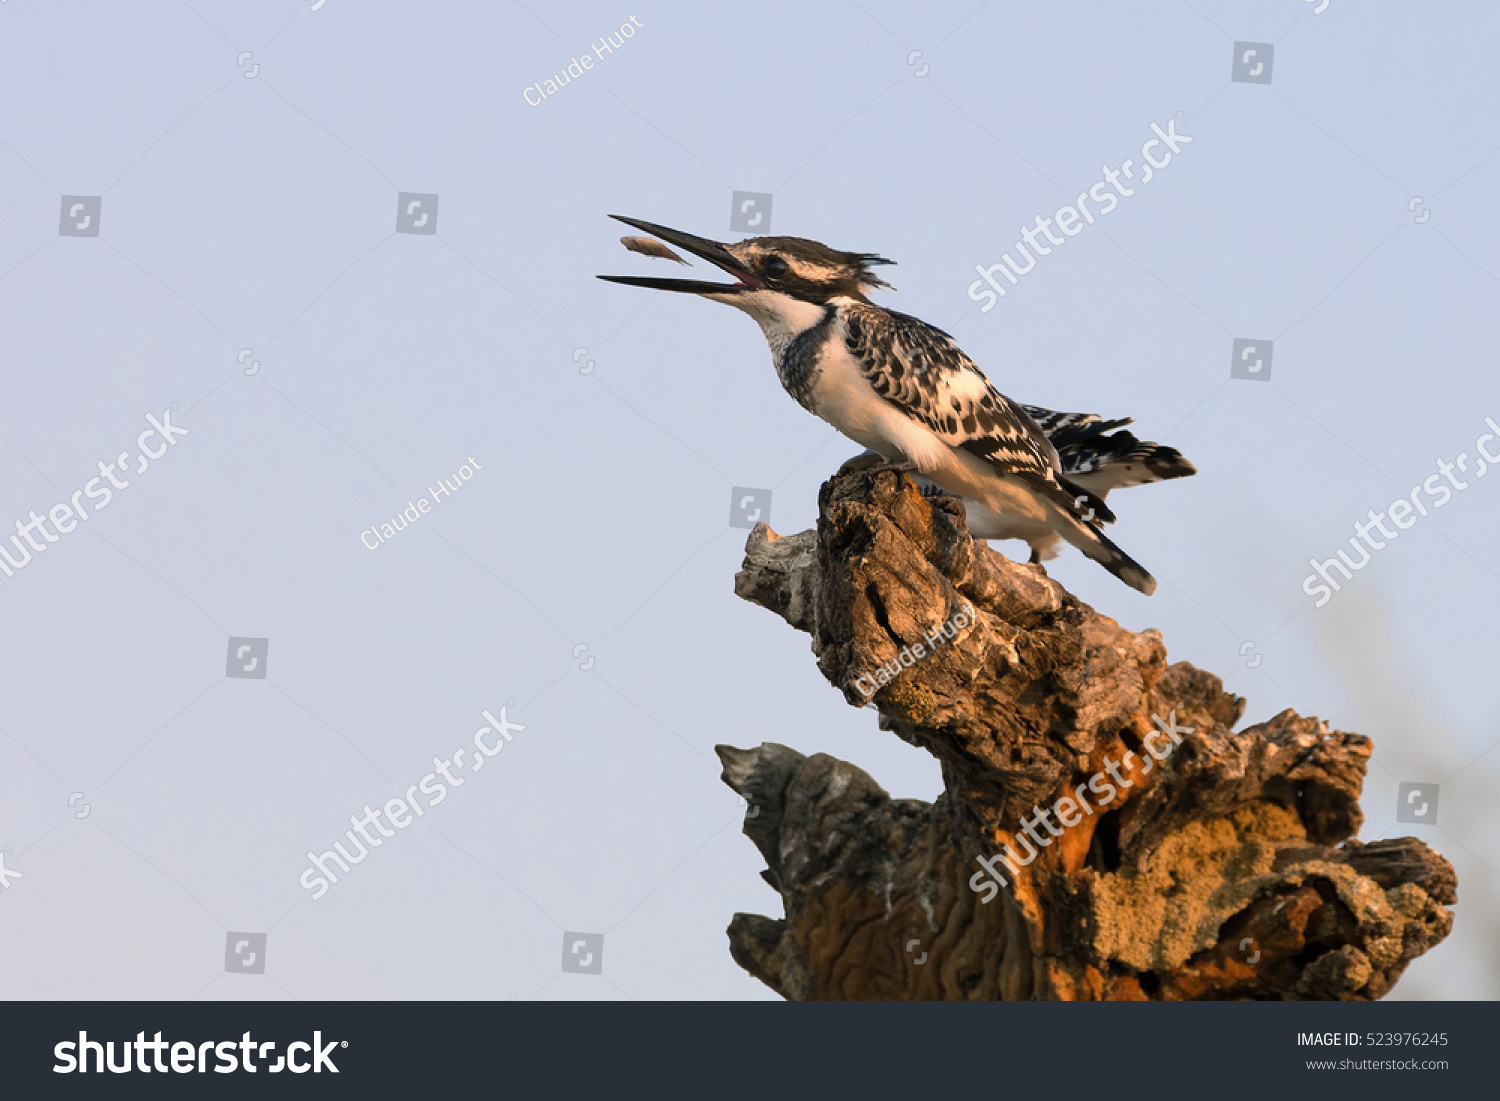 Pied kingfisher (Ceryle rudis) flips a minnow in its beak for better swallowing in the golden light just before sunset near the river in the Chobe National Park, Botswana.